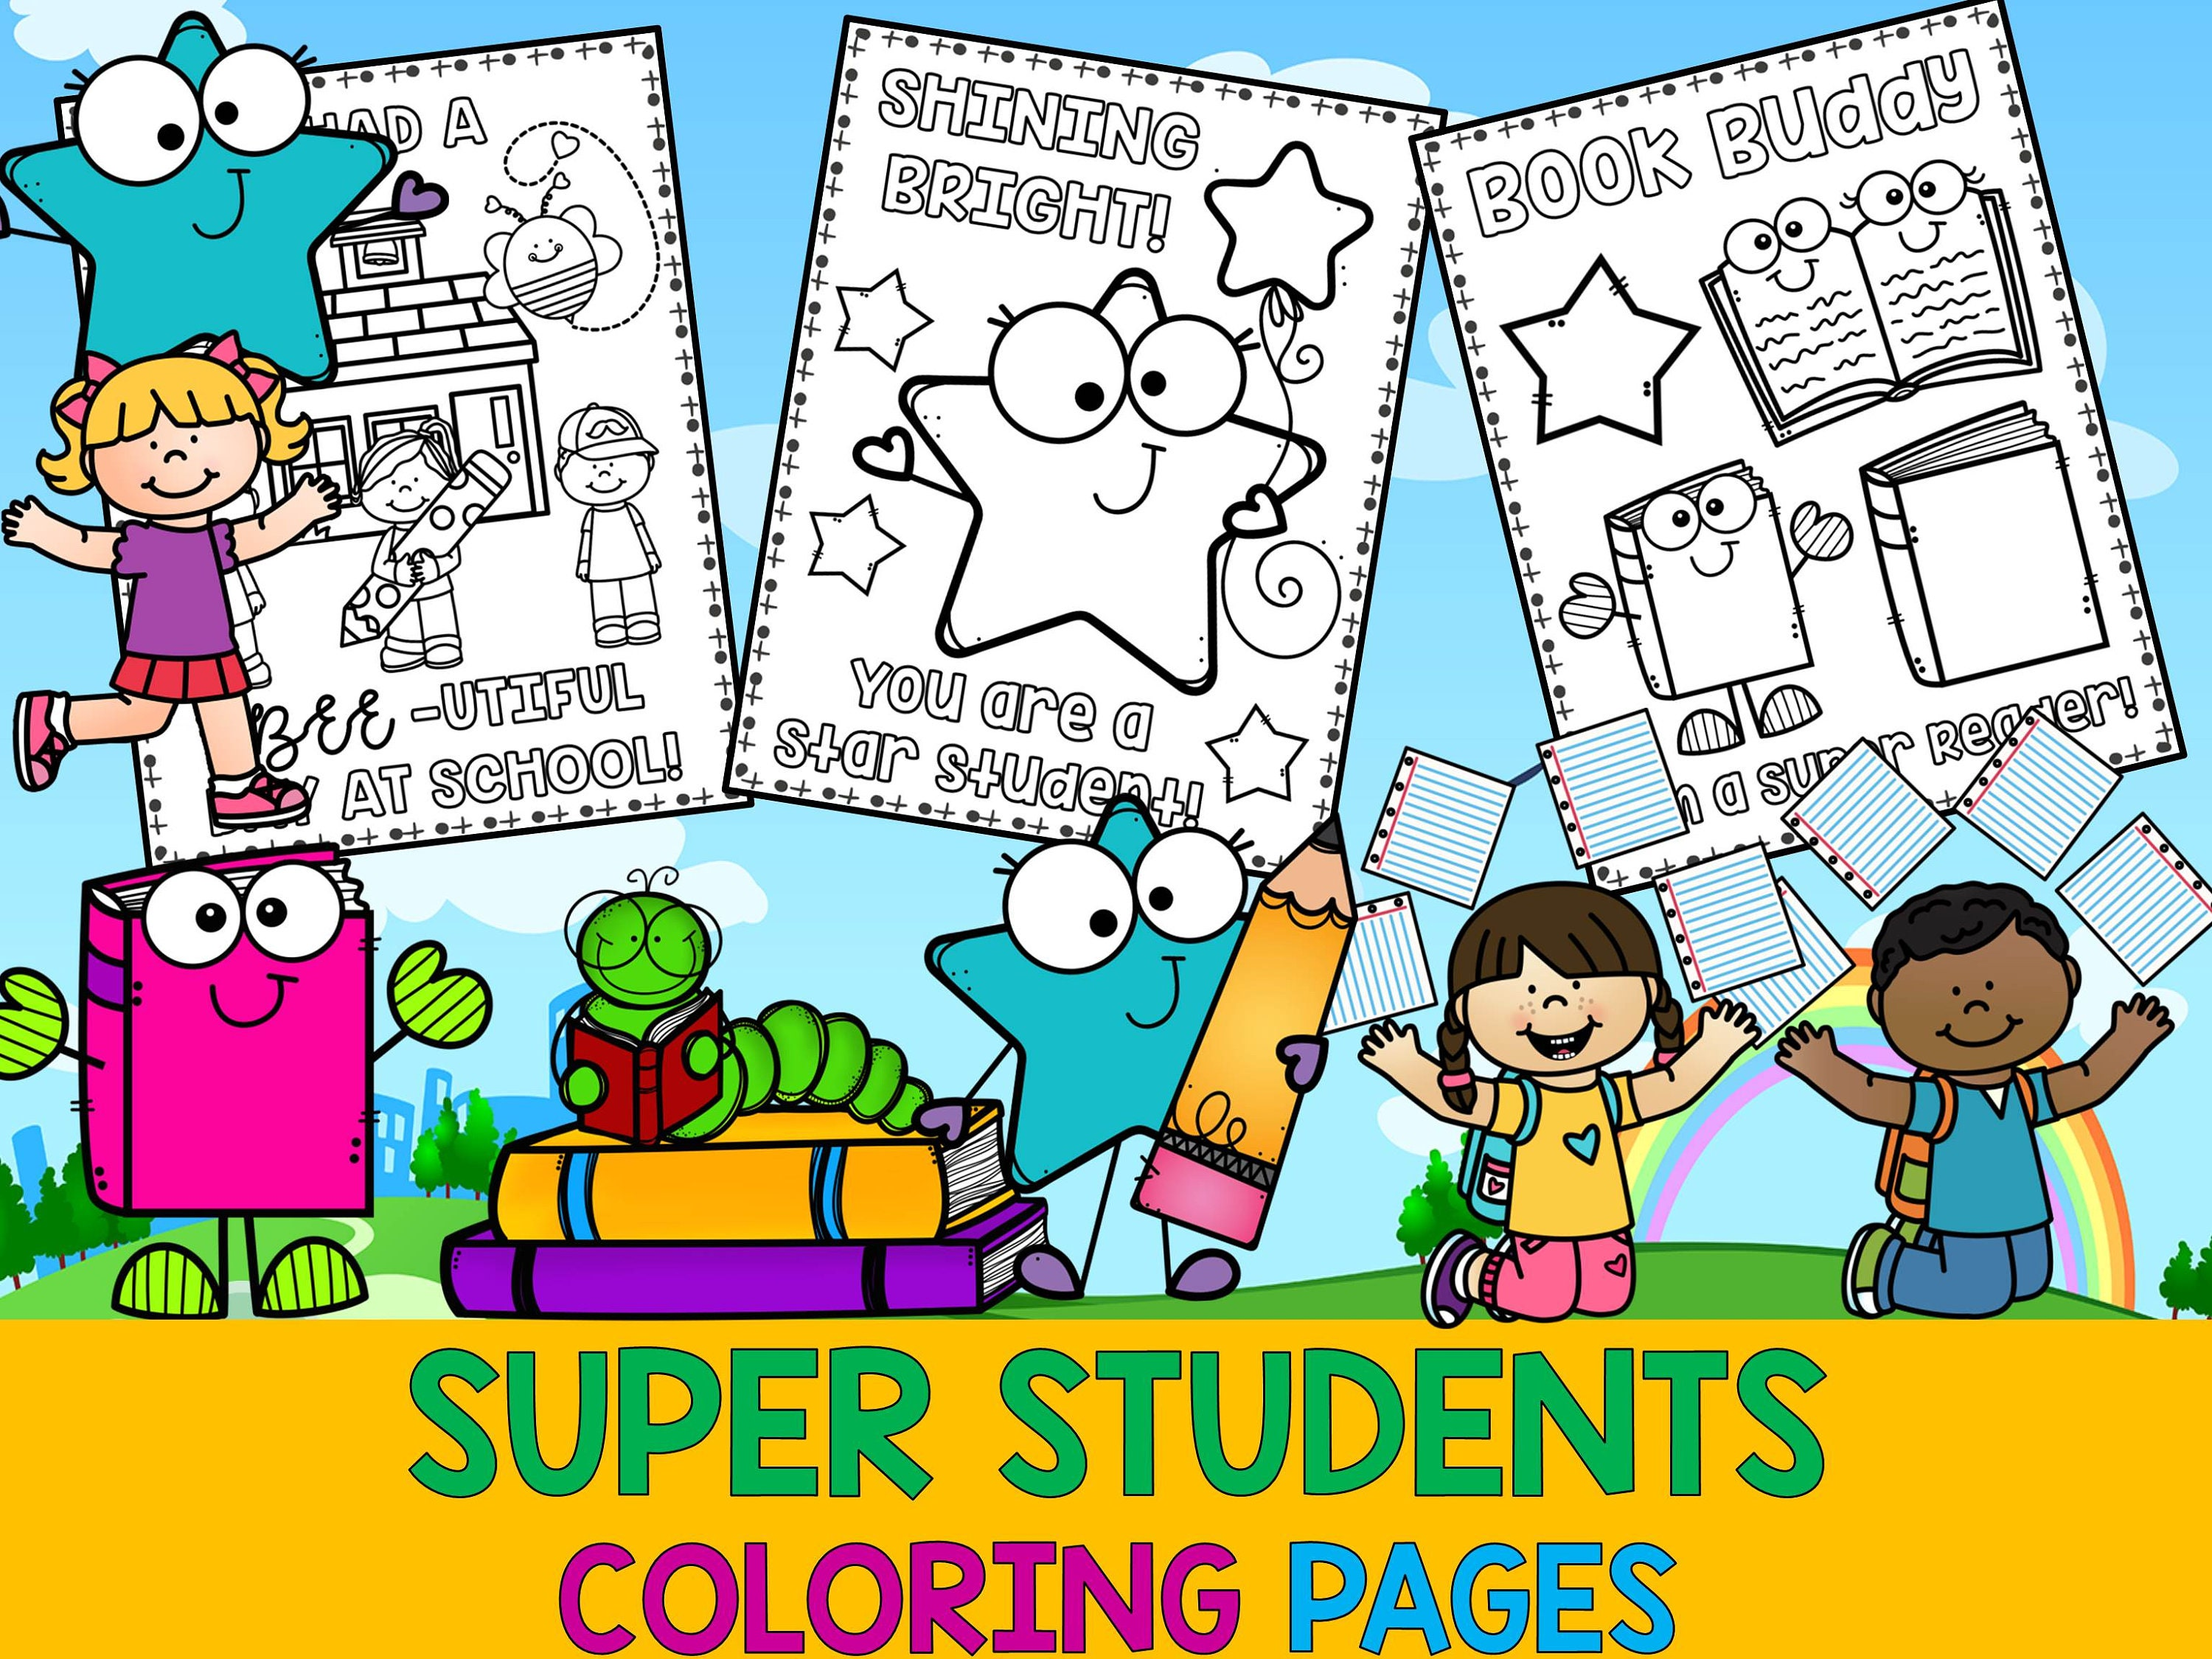 Super Students Coloring Pages The Crayon Crowd Kids book | Etsy